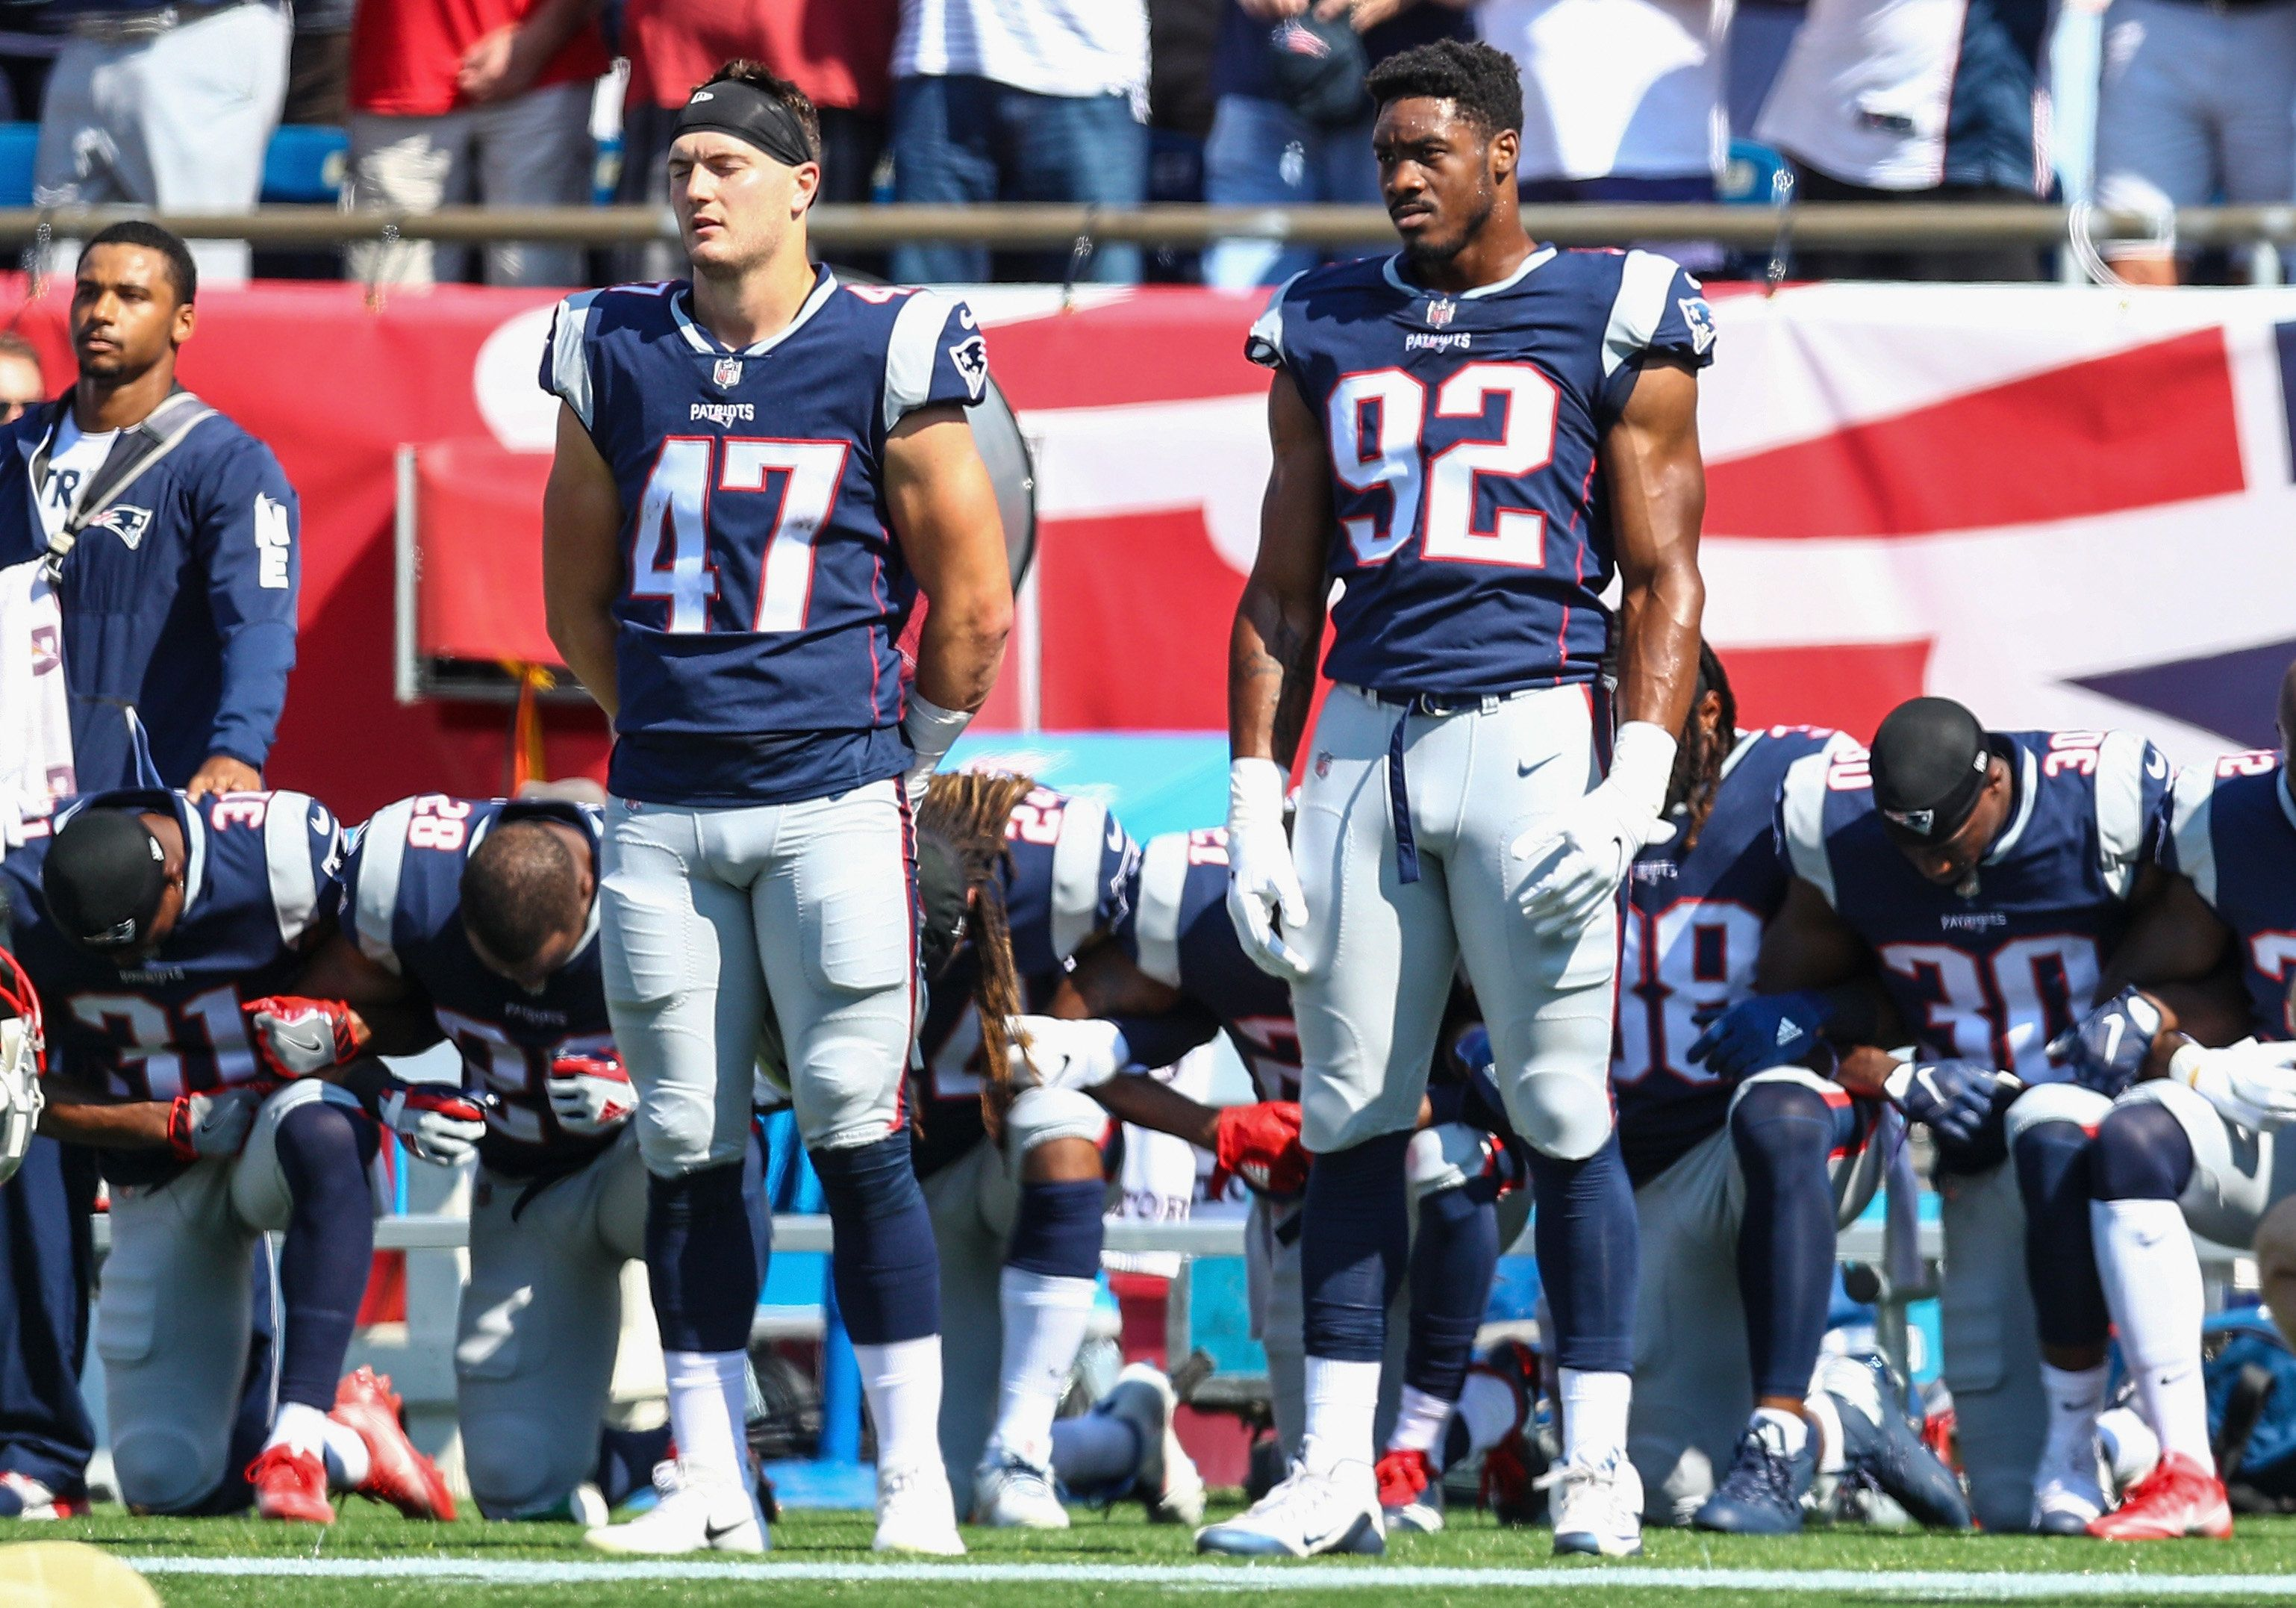 Takeaknee Celebs And Nfl Stars React To Trump S Latest Criticism Of National Anthem Protests National Anthem Taking A Knee New England Patriots